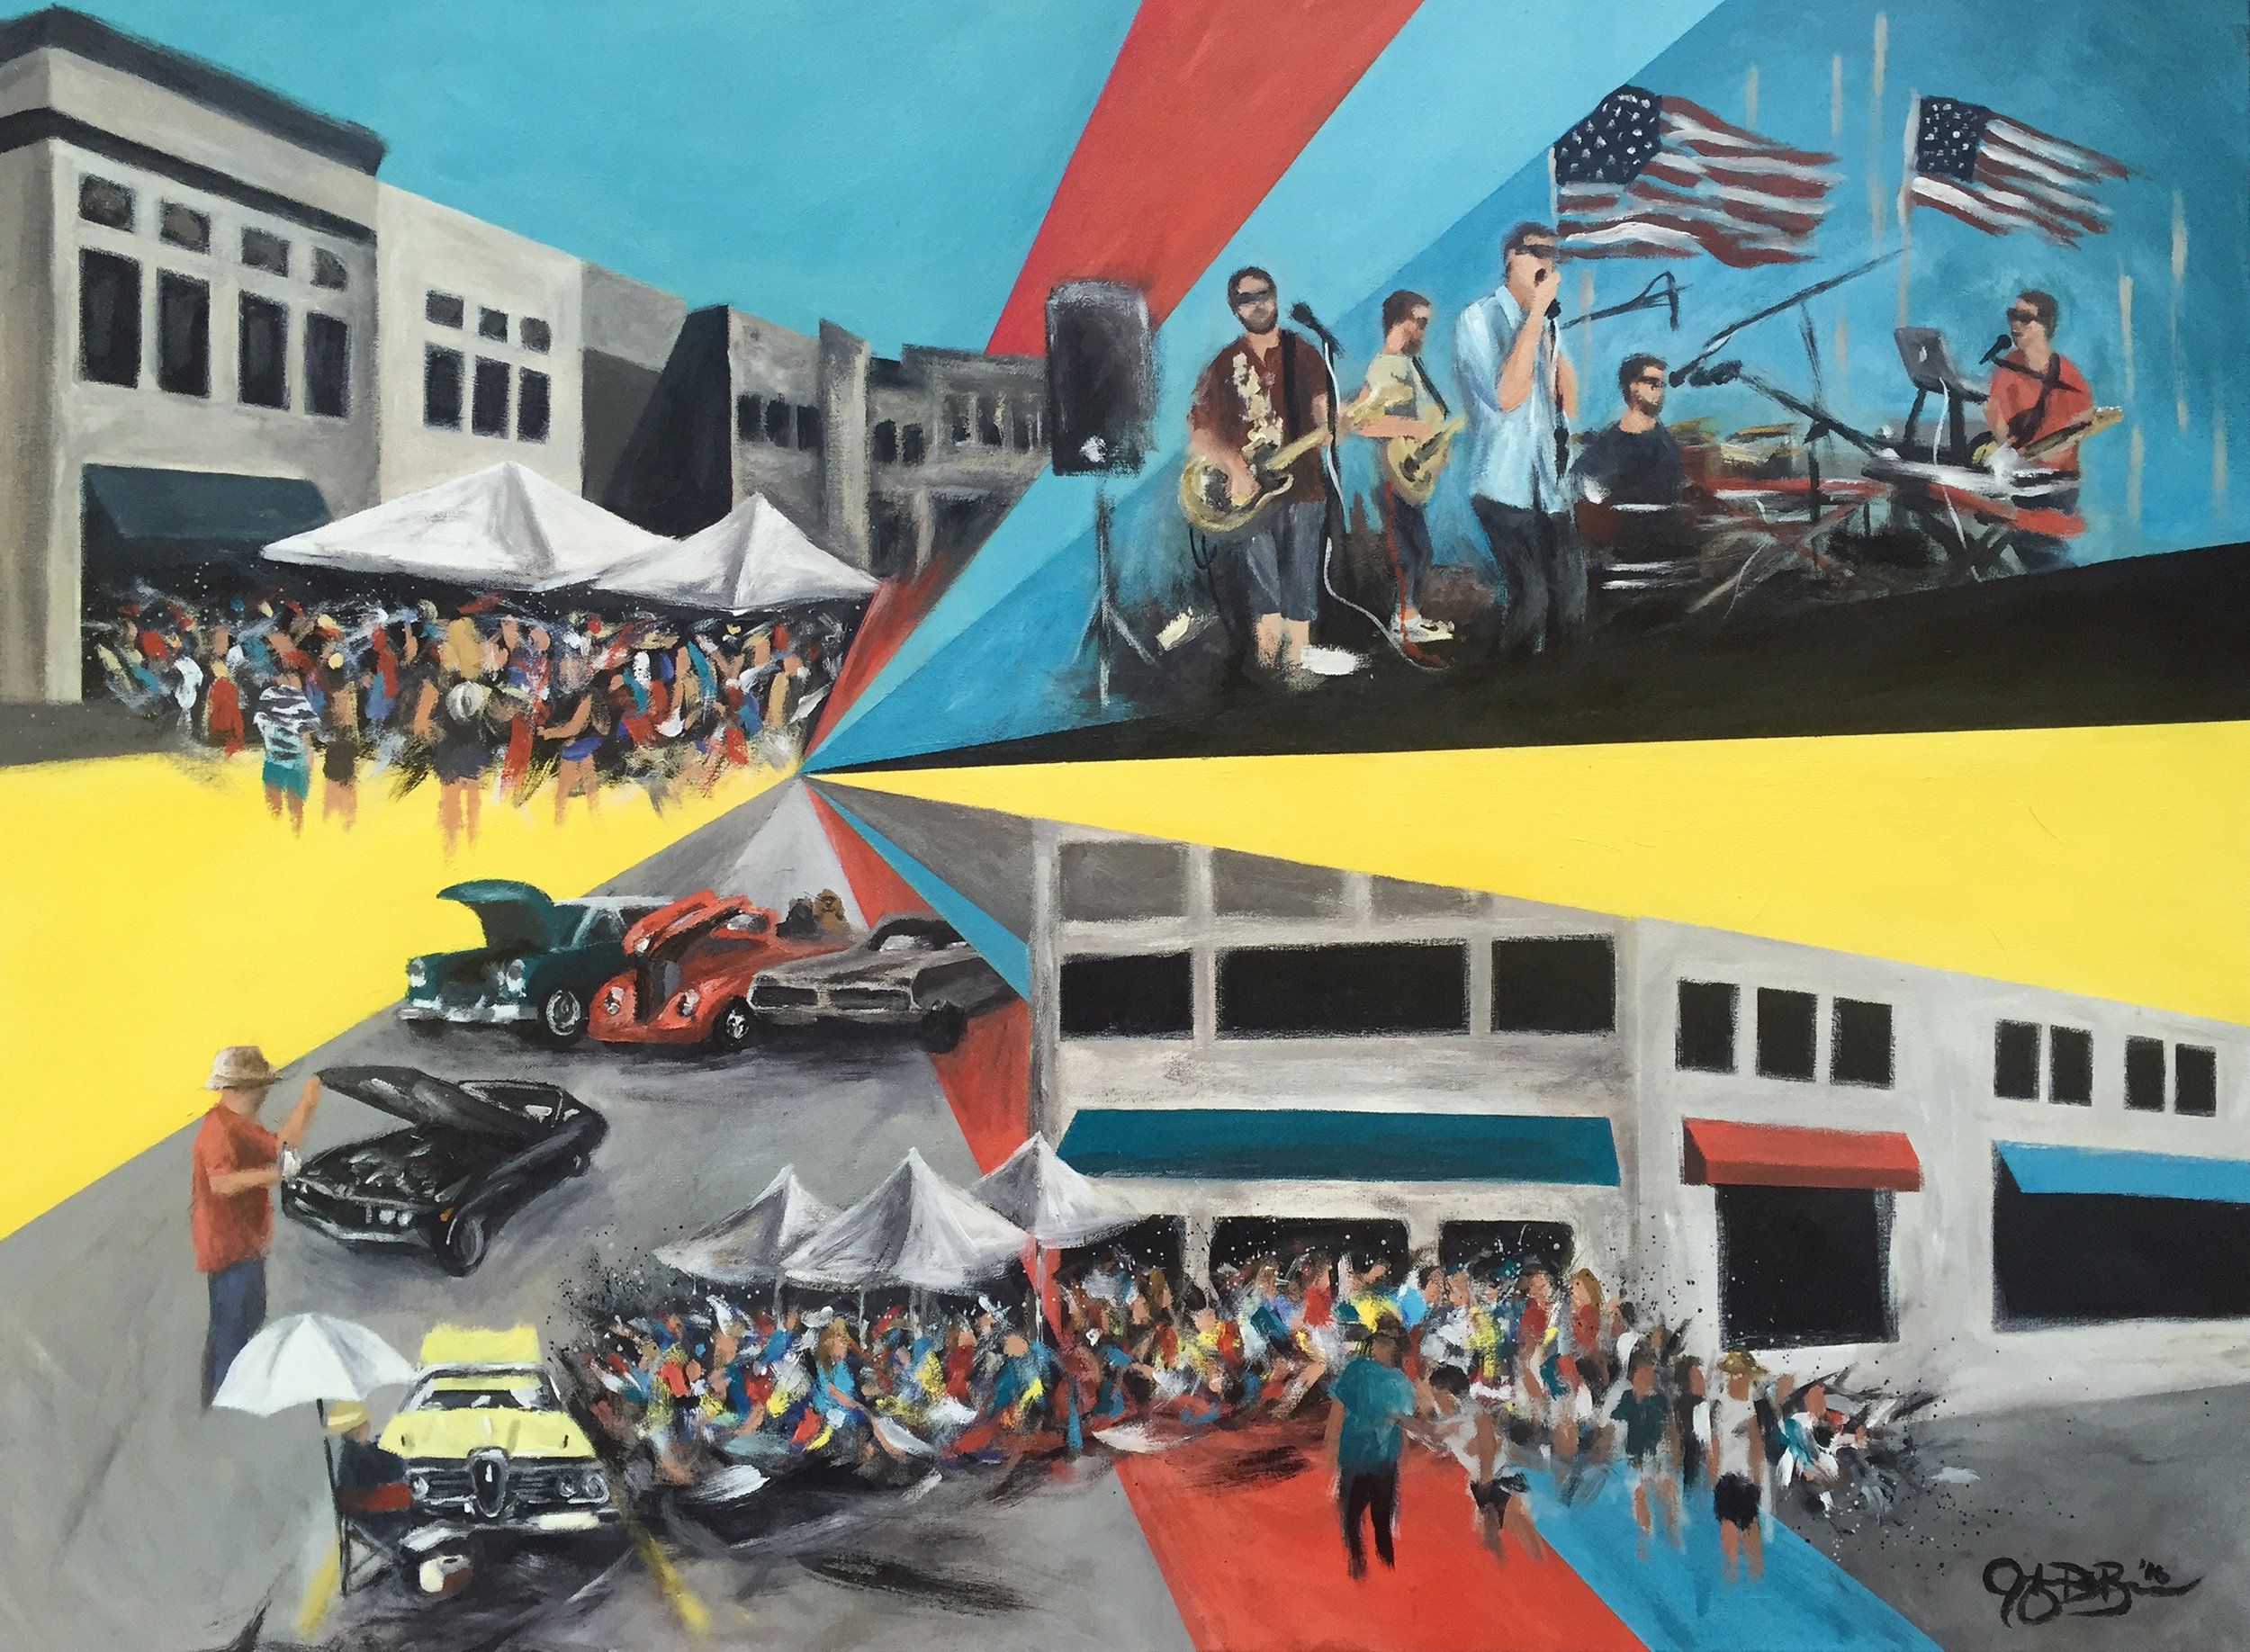 Completed live event painting - Cruisin' for Heroes: Perk-cUP! Cafe's 5 Year Anniversary Celebration